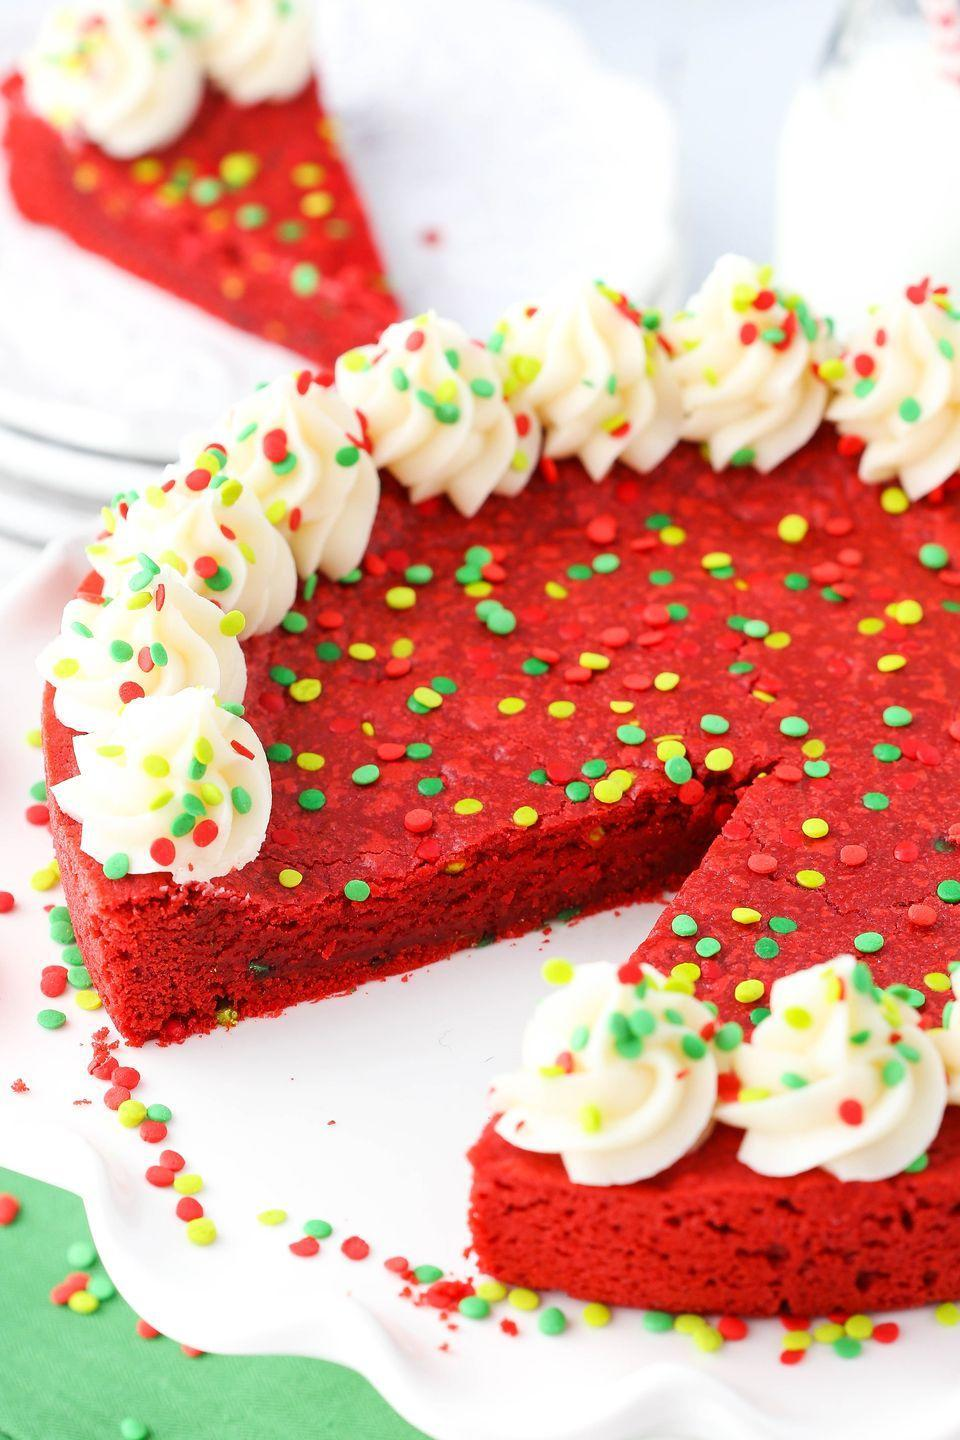 """<p>Cream cheese frosting seals the deal.</p><p>Get the recipe from <a href=""""https://www.delish.com/cooking/recipe-ideas/recipes/a50246/red-velvet-cookie-cake-recipe/"""" rel=""""nofollow noopener"""" target=""""_blank"""" data-ylk=""""slk:Delish"""" class=""""link rapid-noclick-resp"""">Delish</a>.</p>"""